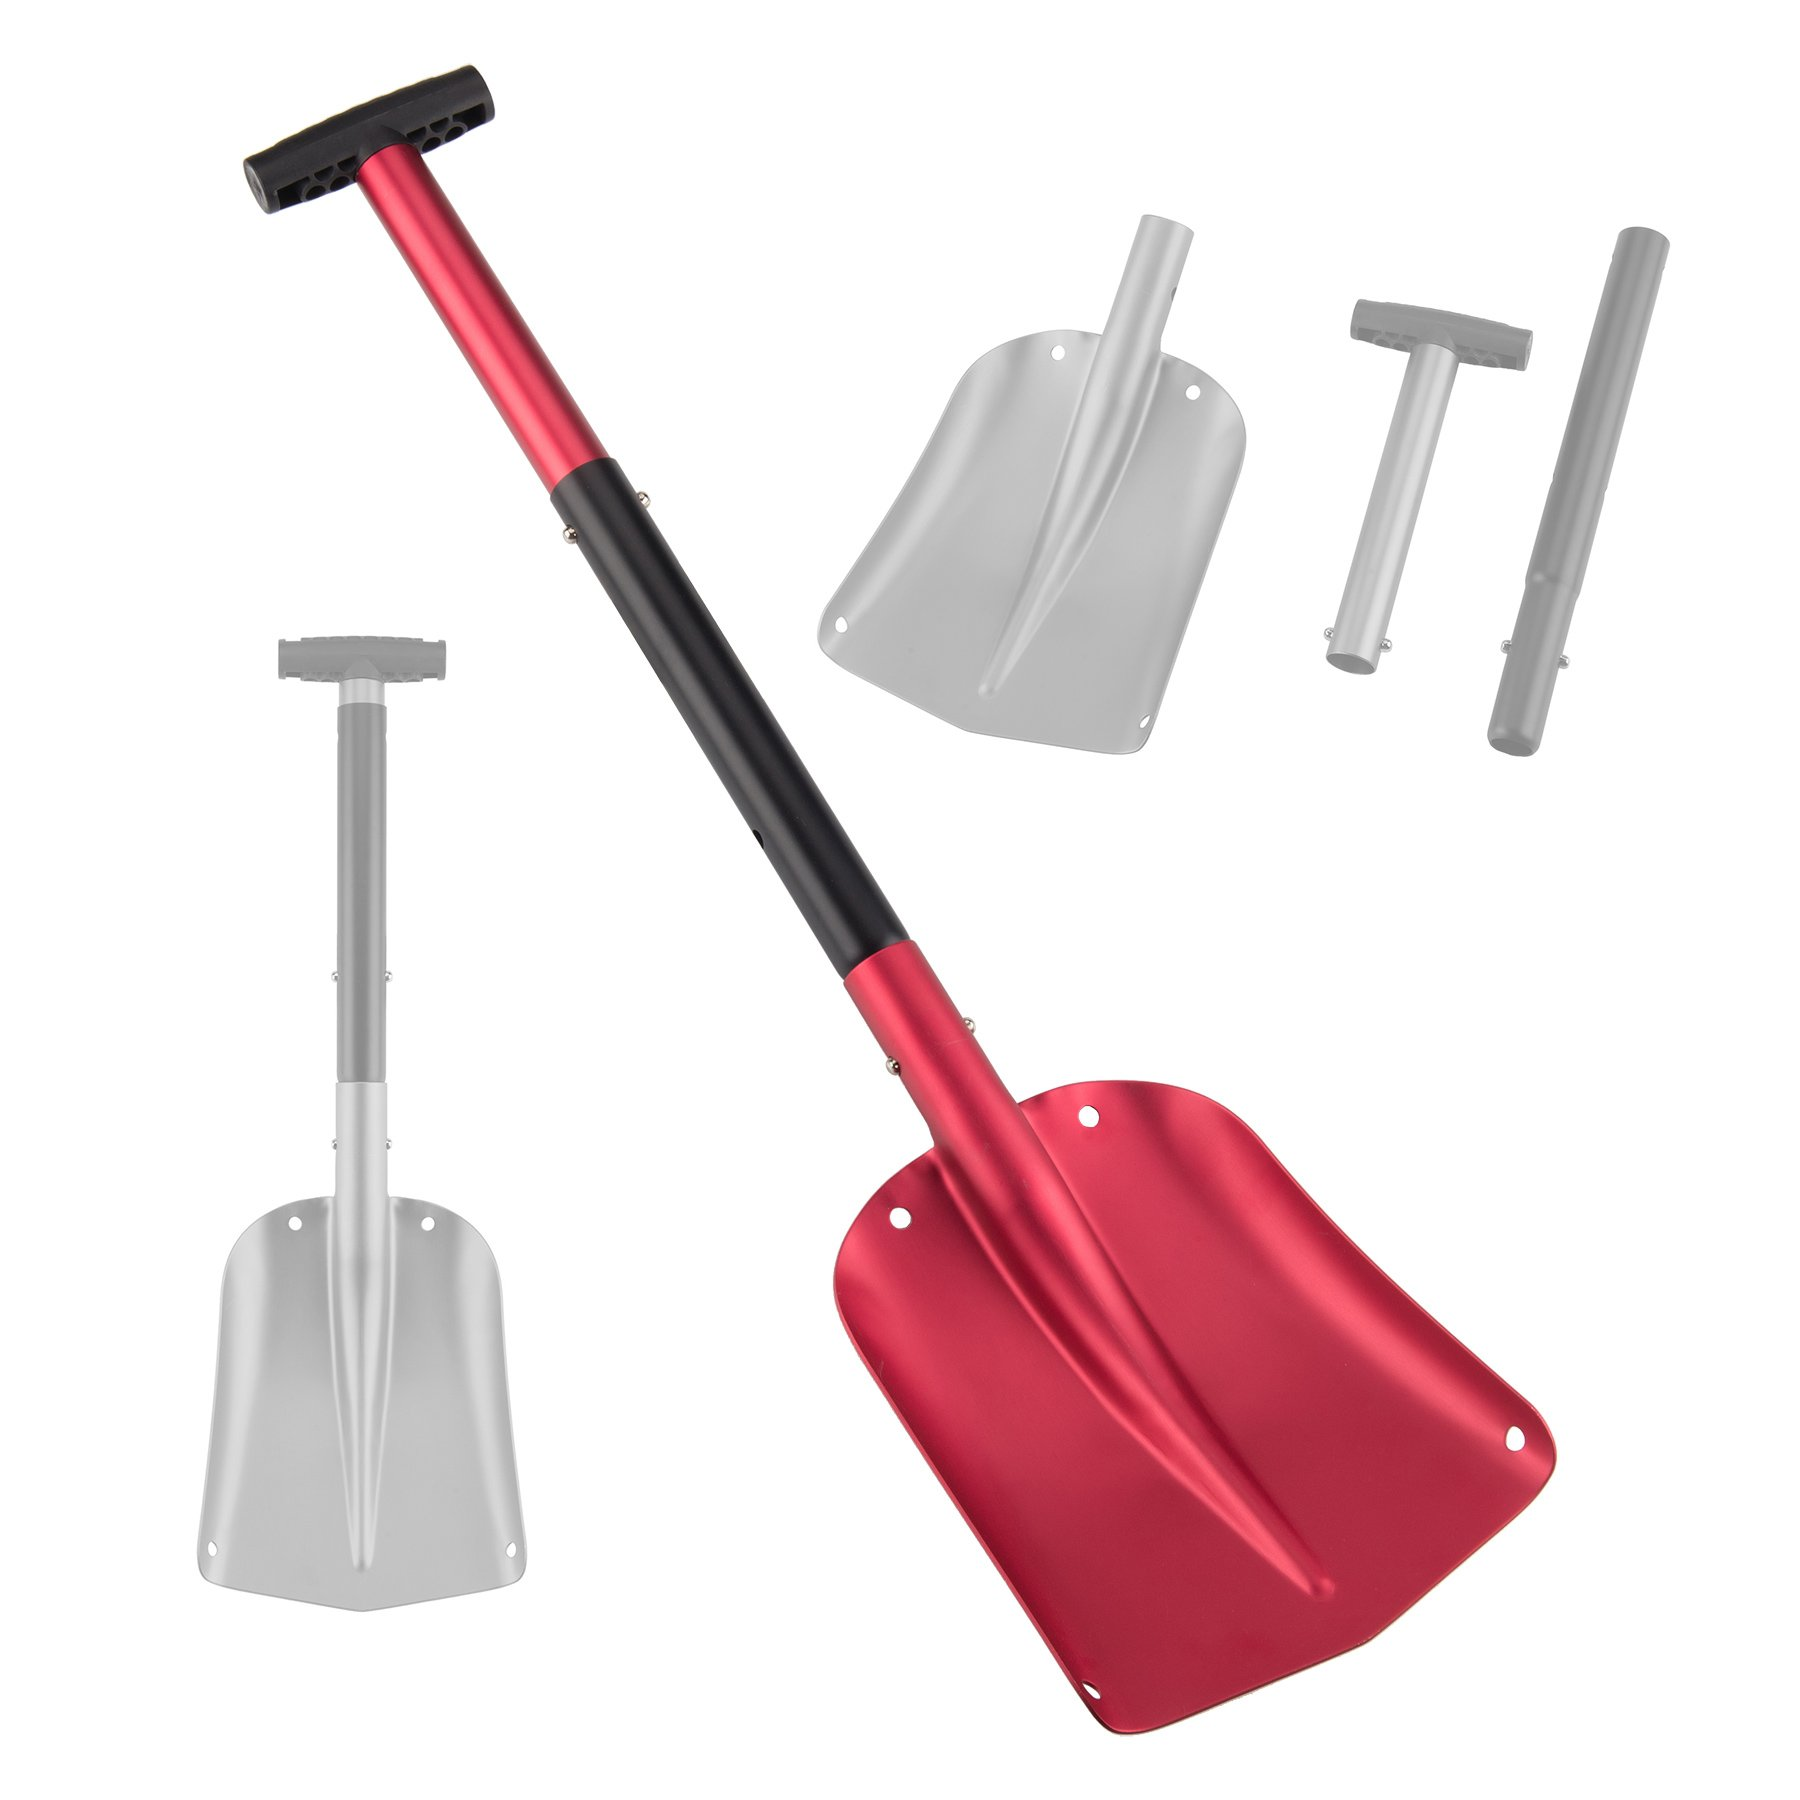 Pinty 26'' - 32'' Aluminum Lightweight Utility Shovel Adjustable and Collapsible Winter Snow Shovels for Car Camping Garden (Red)